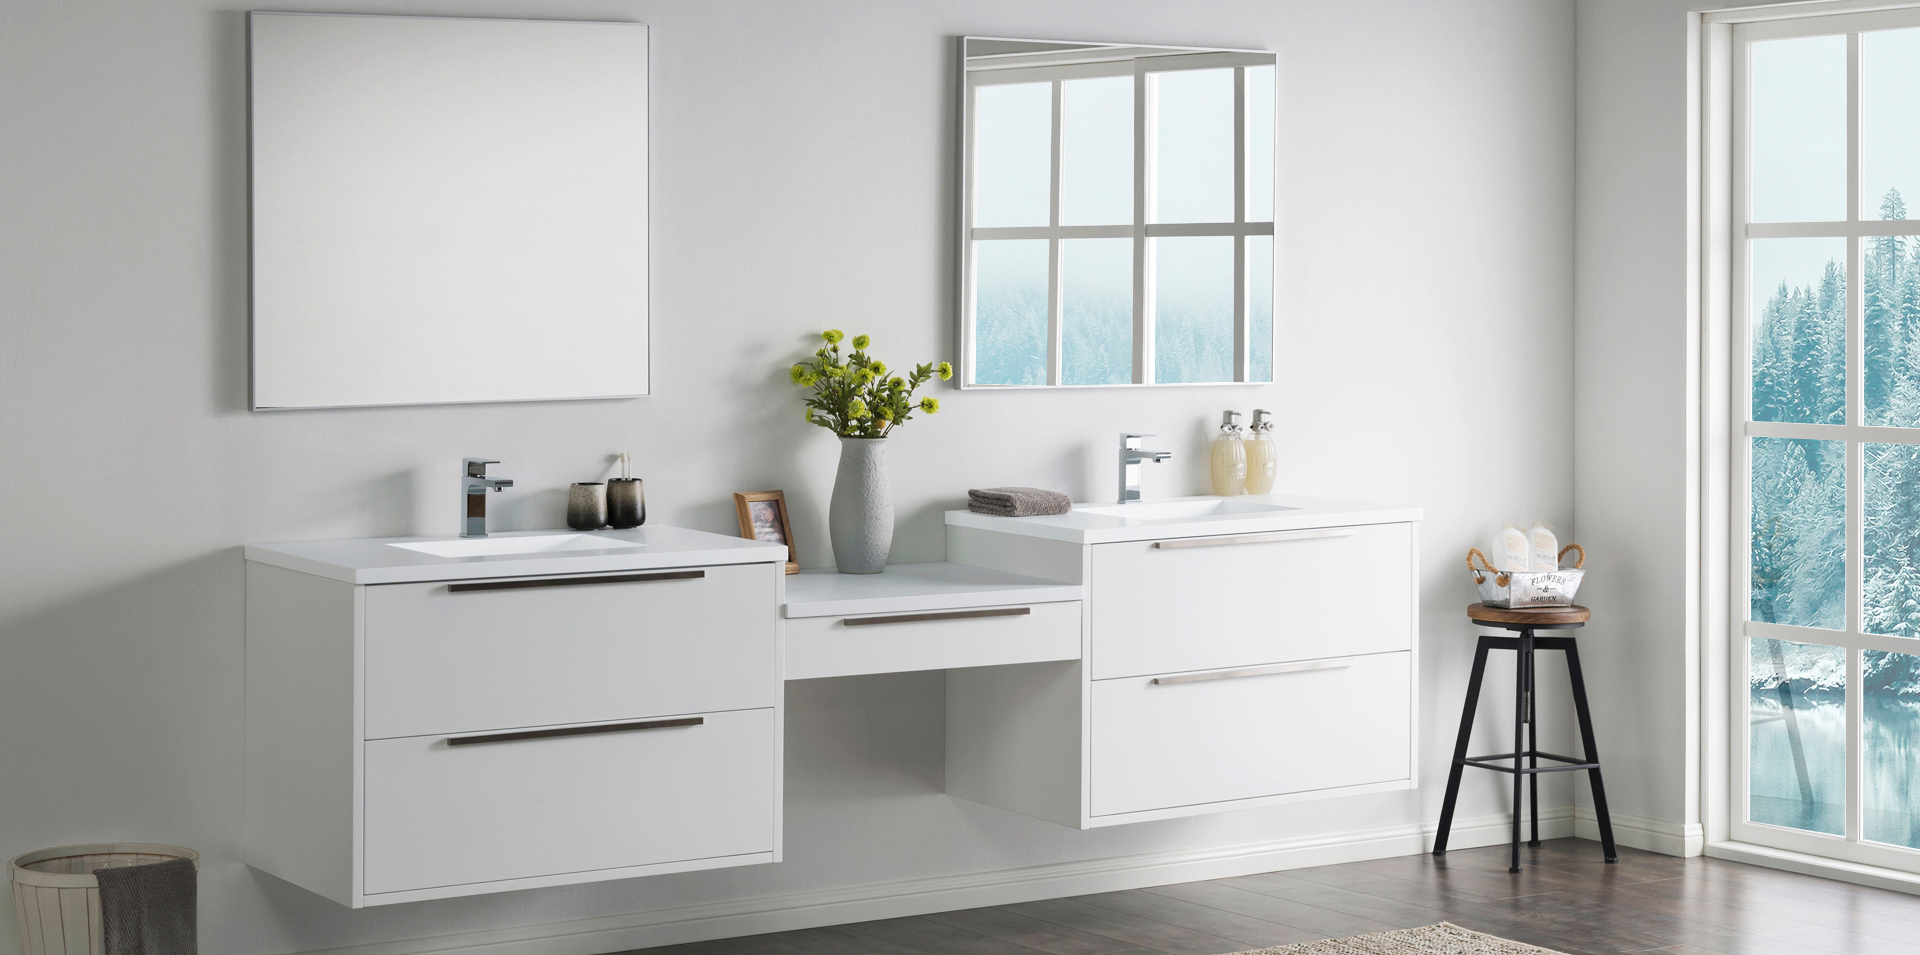 Wholesale Bathroom Vanities- Get Cheap And Hassle Free Options